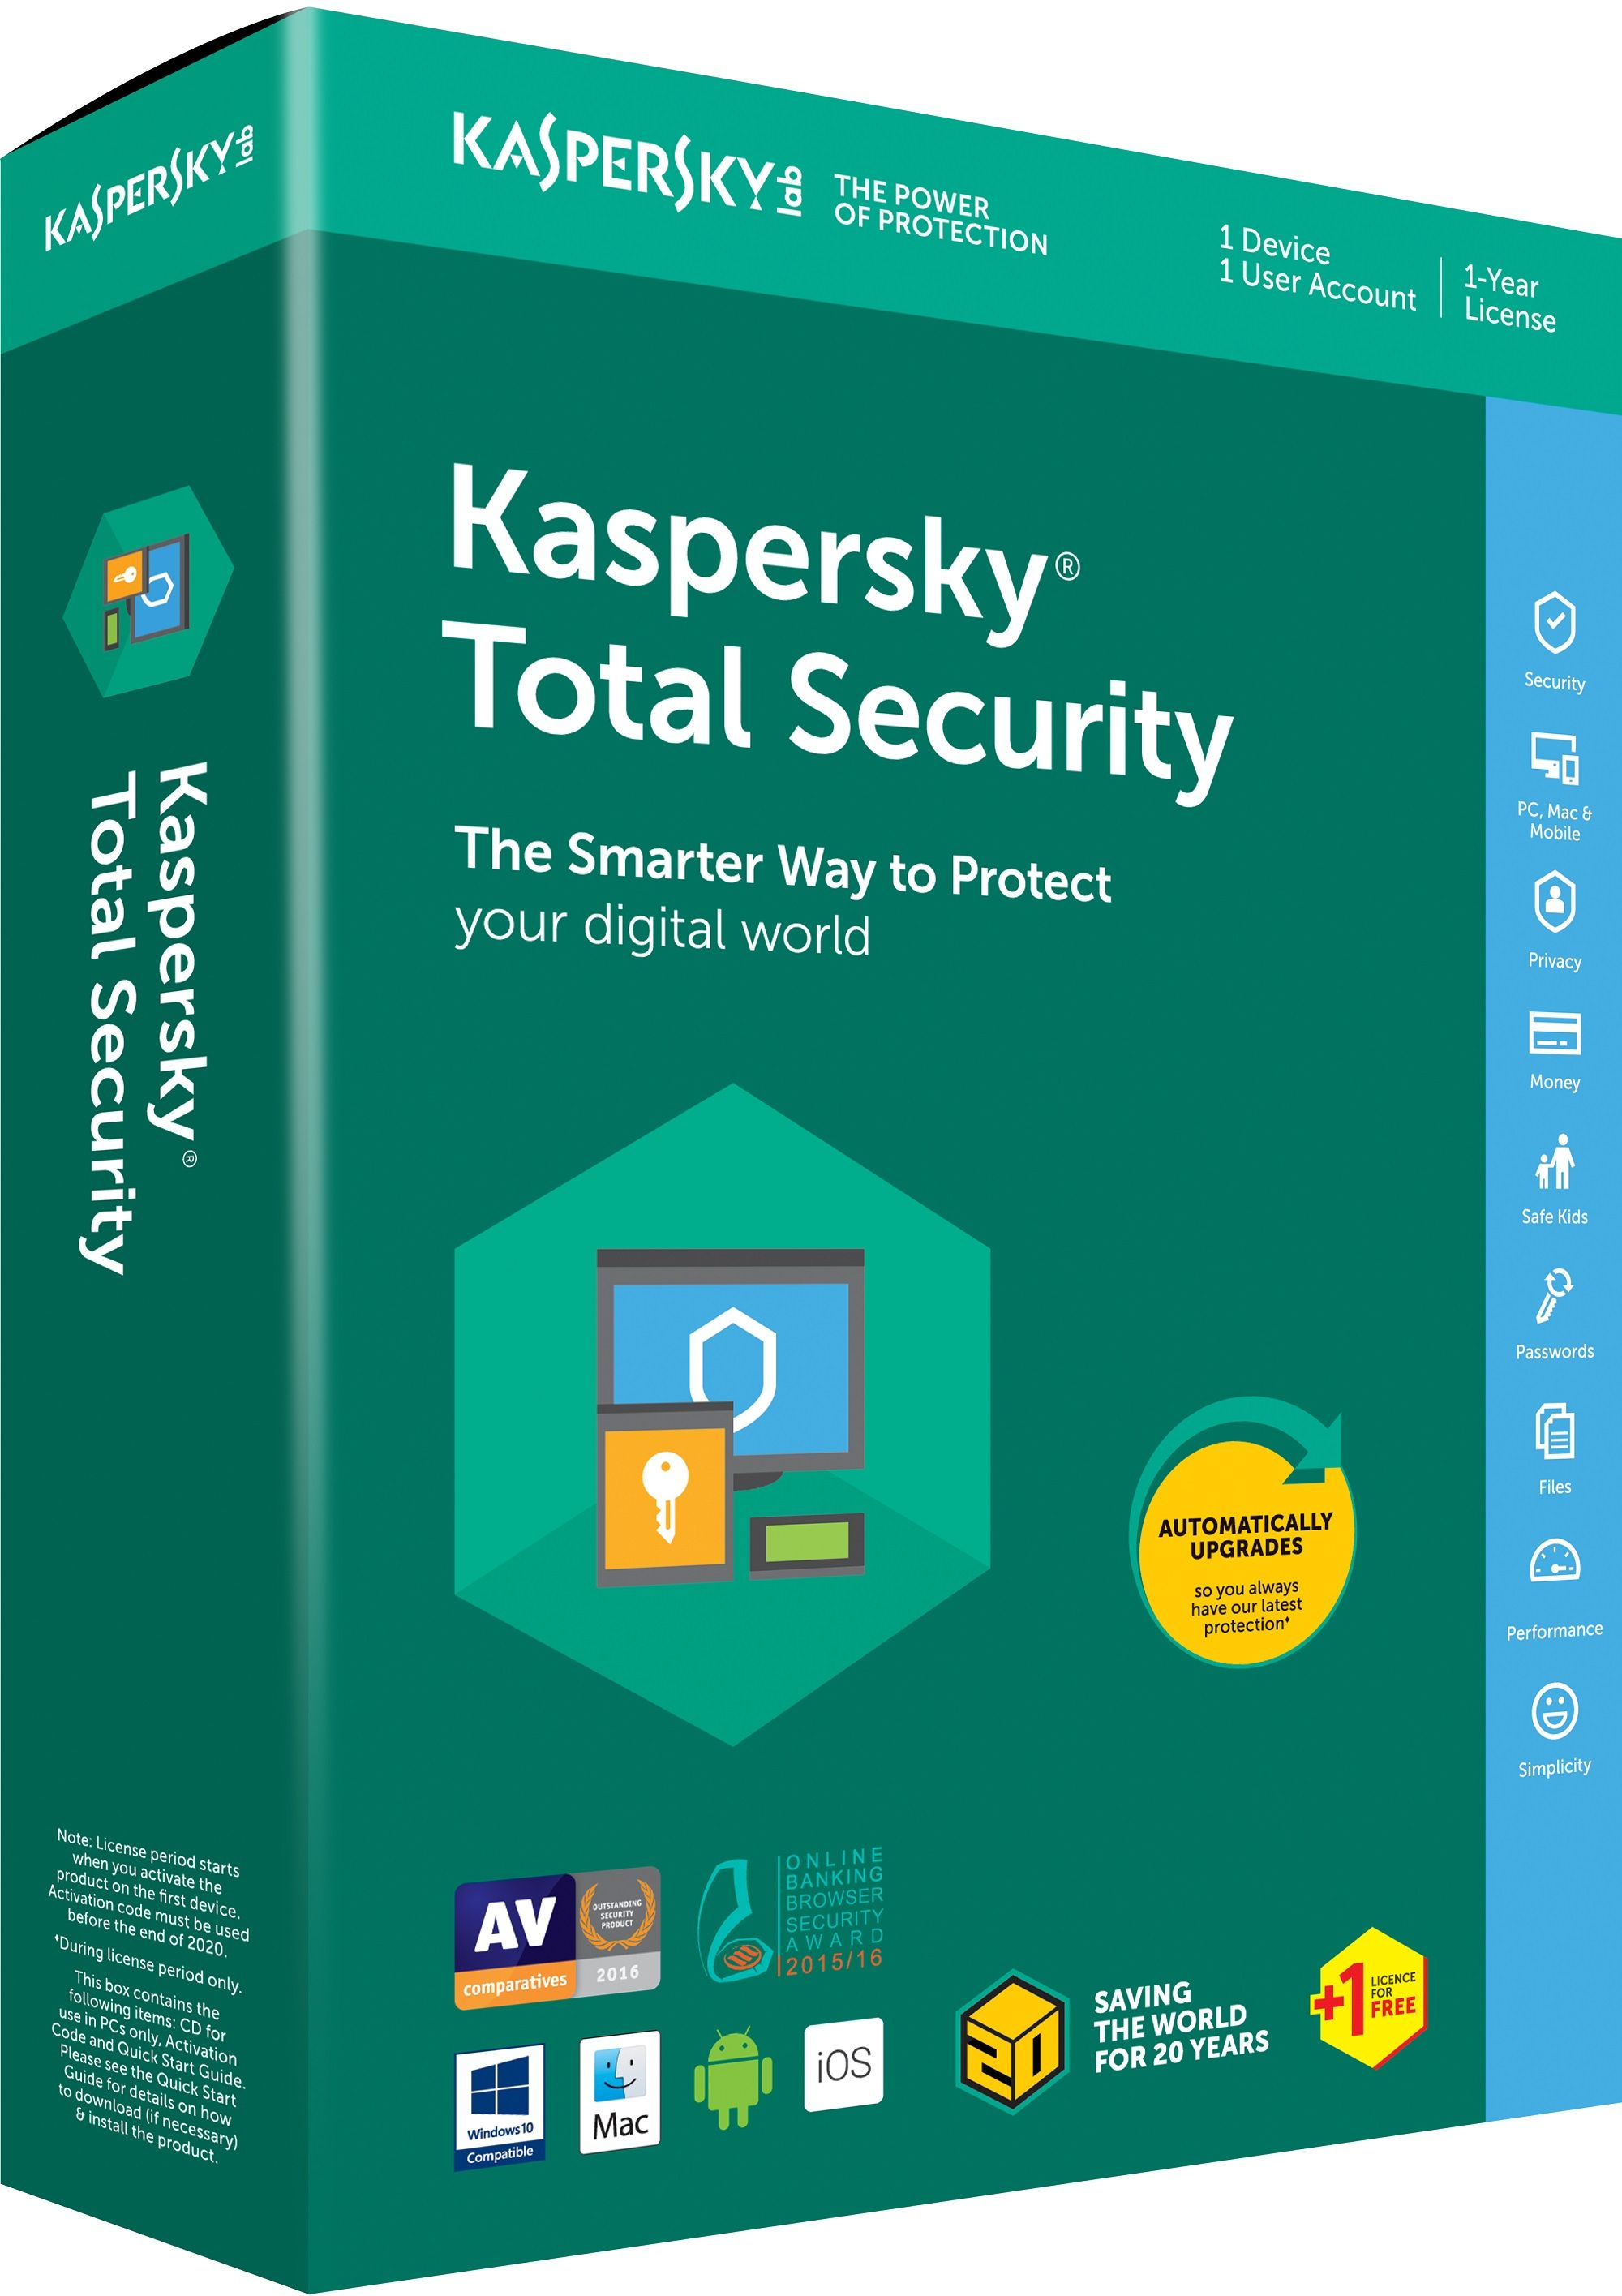 Kaspersky Lab Introduces Next Generation Consumer Lineup